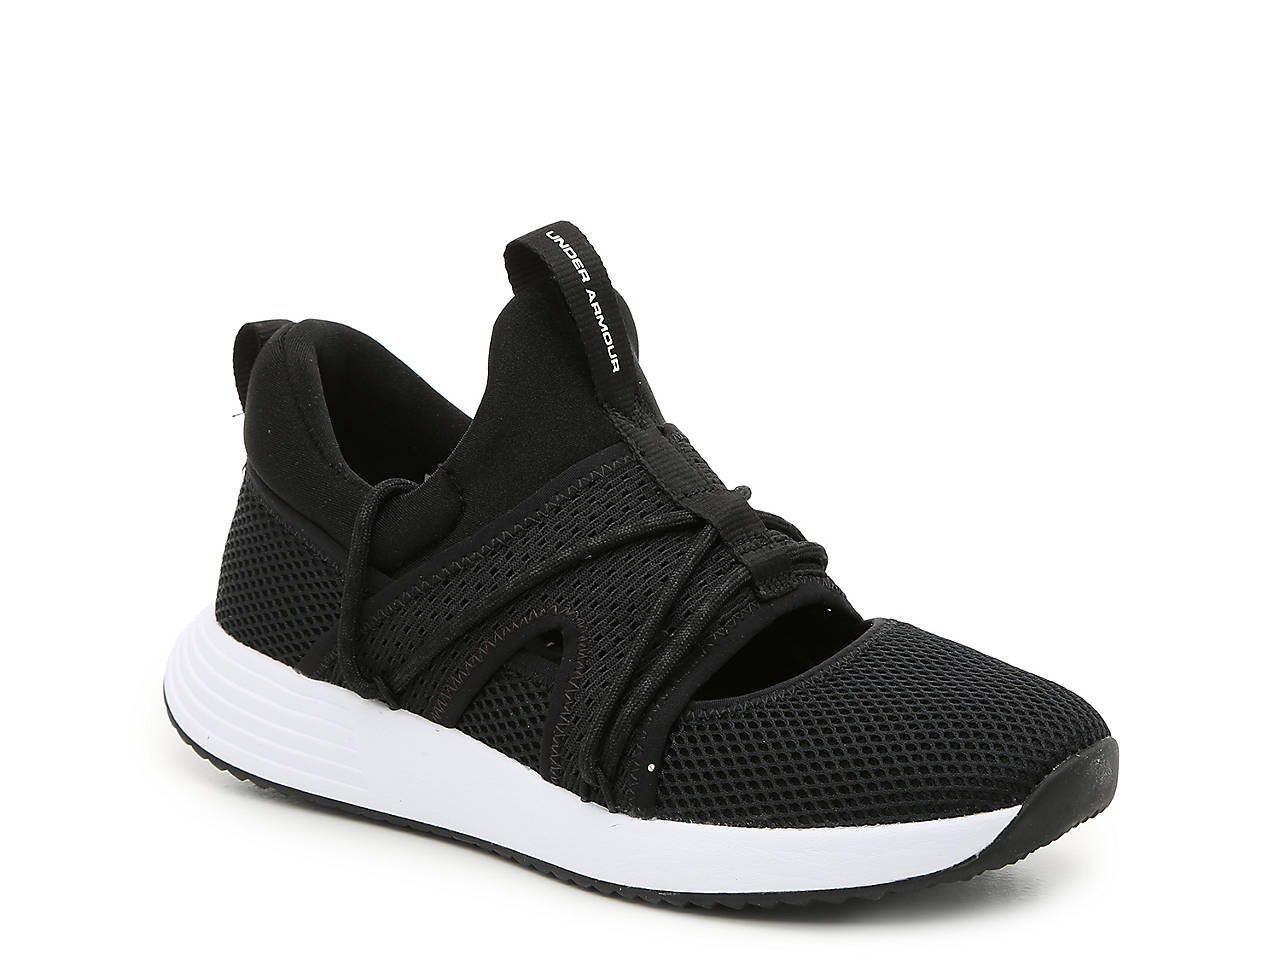 Under Armour Women's 'Breathe Sola' Trainers Black 3021328 001